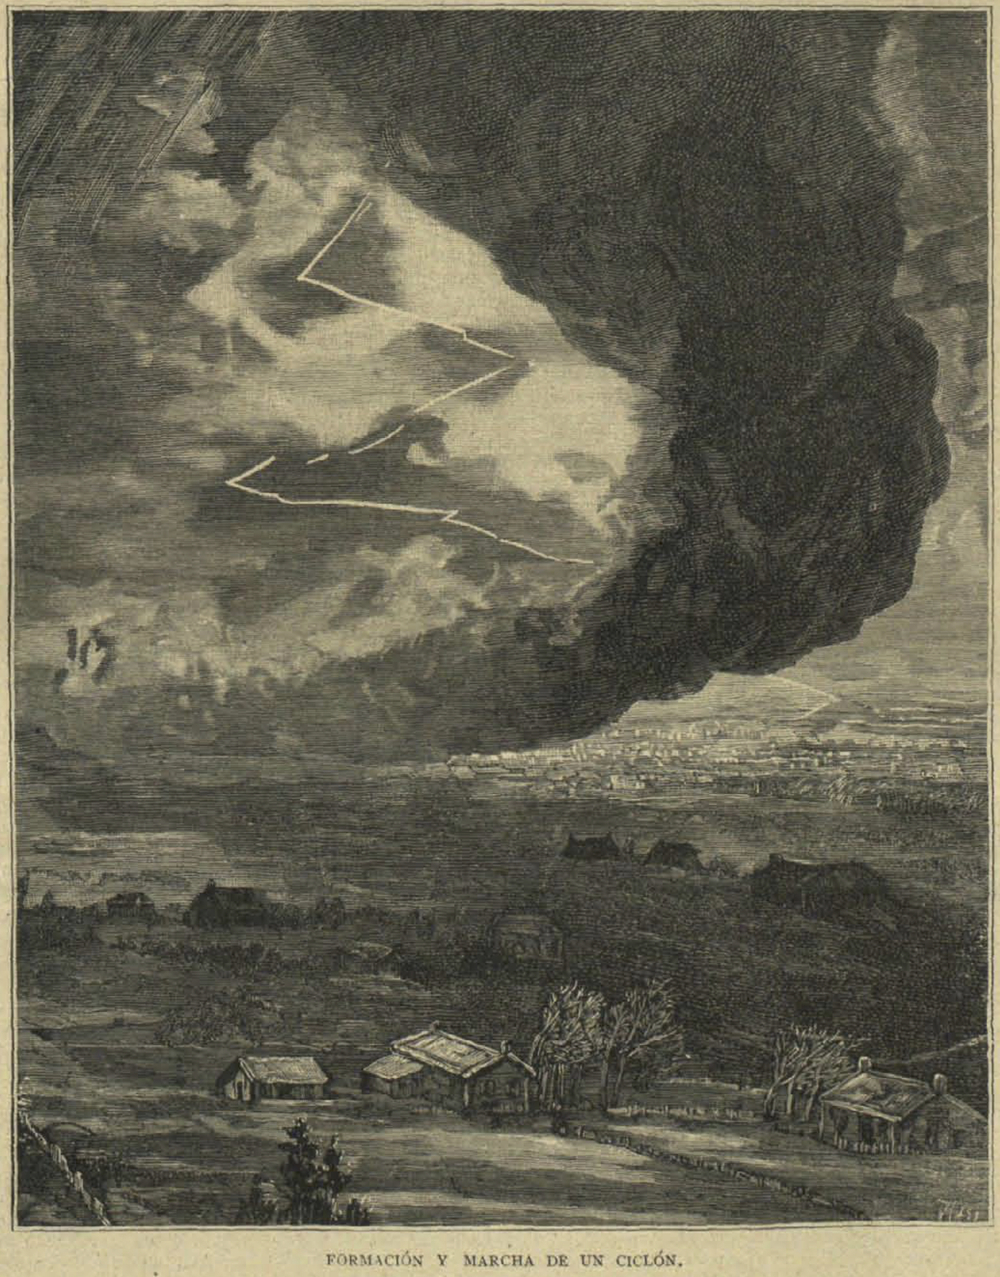 An idealised depiction of the F3 tornado that hit Madrid (Spain) on 12 May 1886 causing extensive damages. The Madrid tornado is the deadliest (47 fatalities) tornado that occurred in Spain since 1800.  References: Gayà, Miquel, 2007: The 1886 tornado of Madrid. Atmos. Res., 83, 201-210. [PDF] Source:  depictions from La Ilustración católica (25 May 1886) [PDF courtesy of Biblioteca Nacional de España] depictions of the damages can also be found in La Ilustración Española y Americana (22 June 1886) [PDF courtesy of Biblioteca Nacional de España]